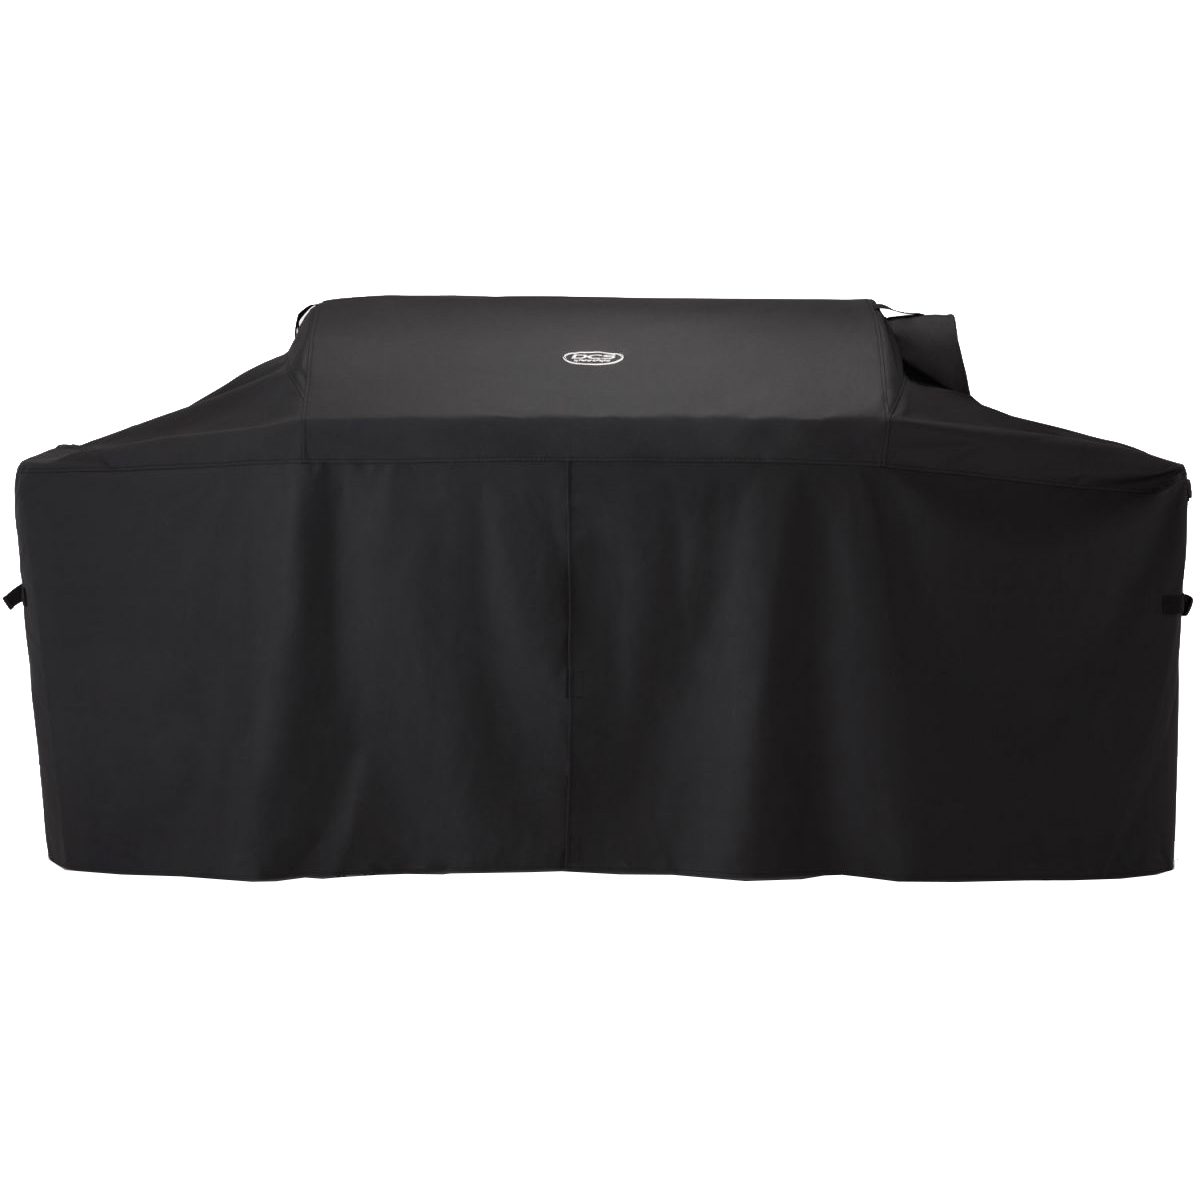 DCS Grill Cover for 48 inch Built In Grills with Side Burner